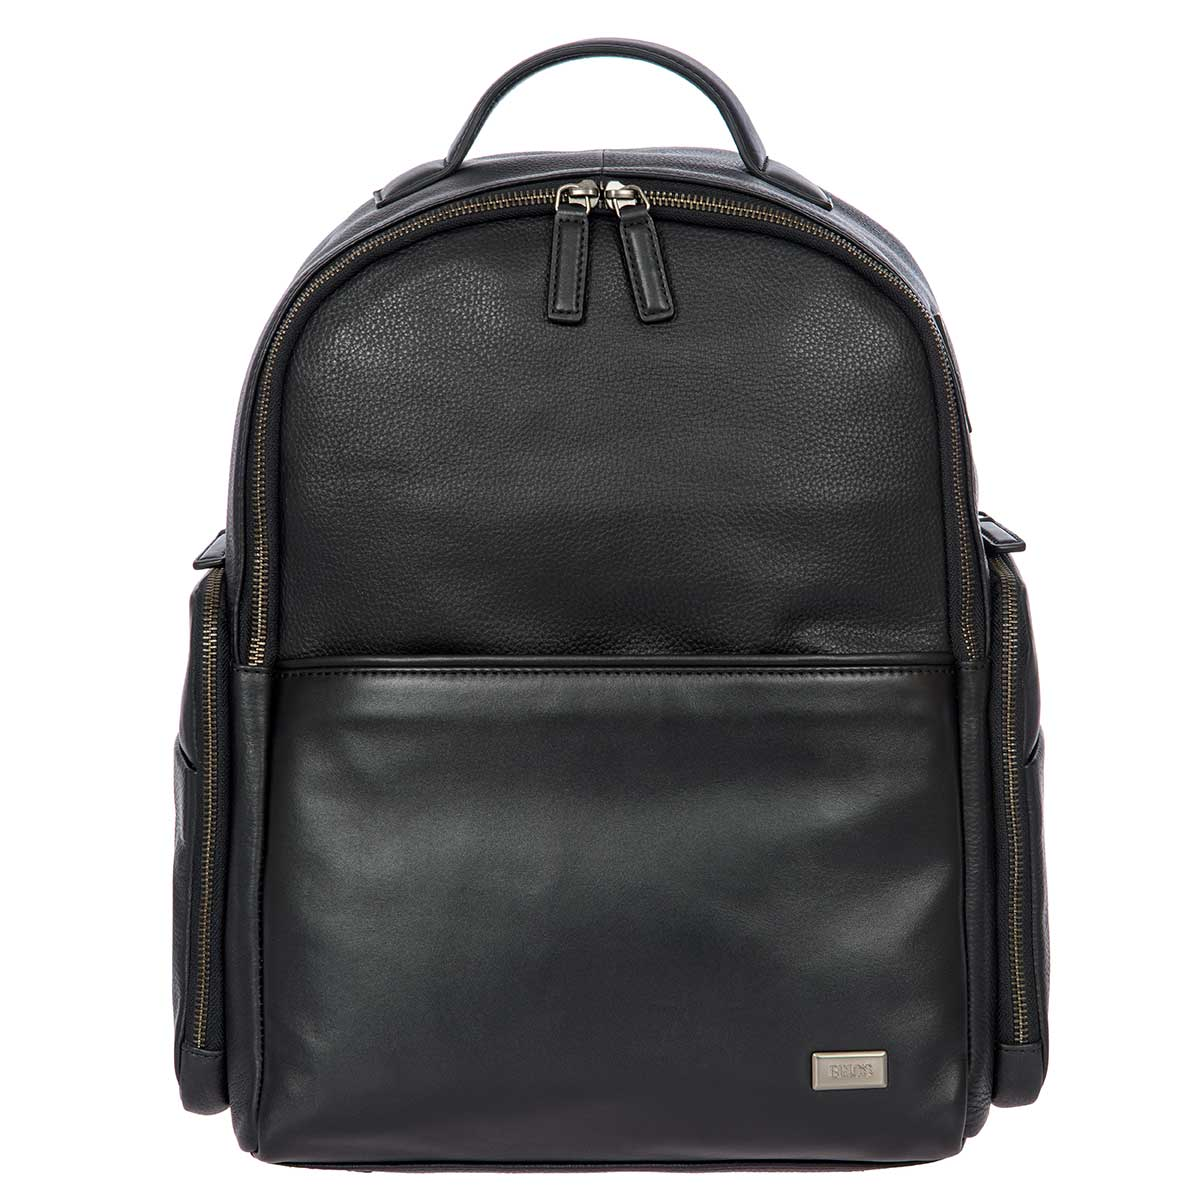 Torino Backpack Business M by Brics (Color: Black)